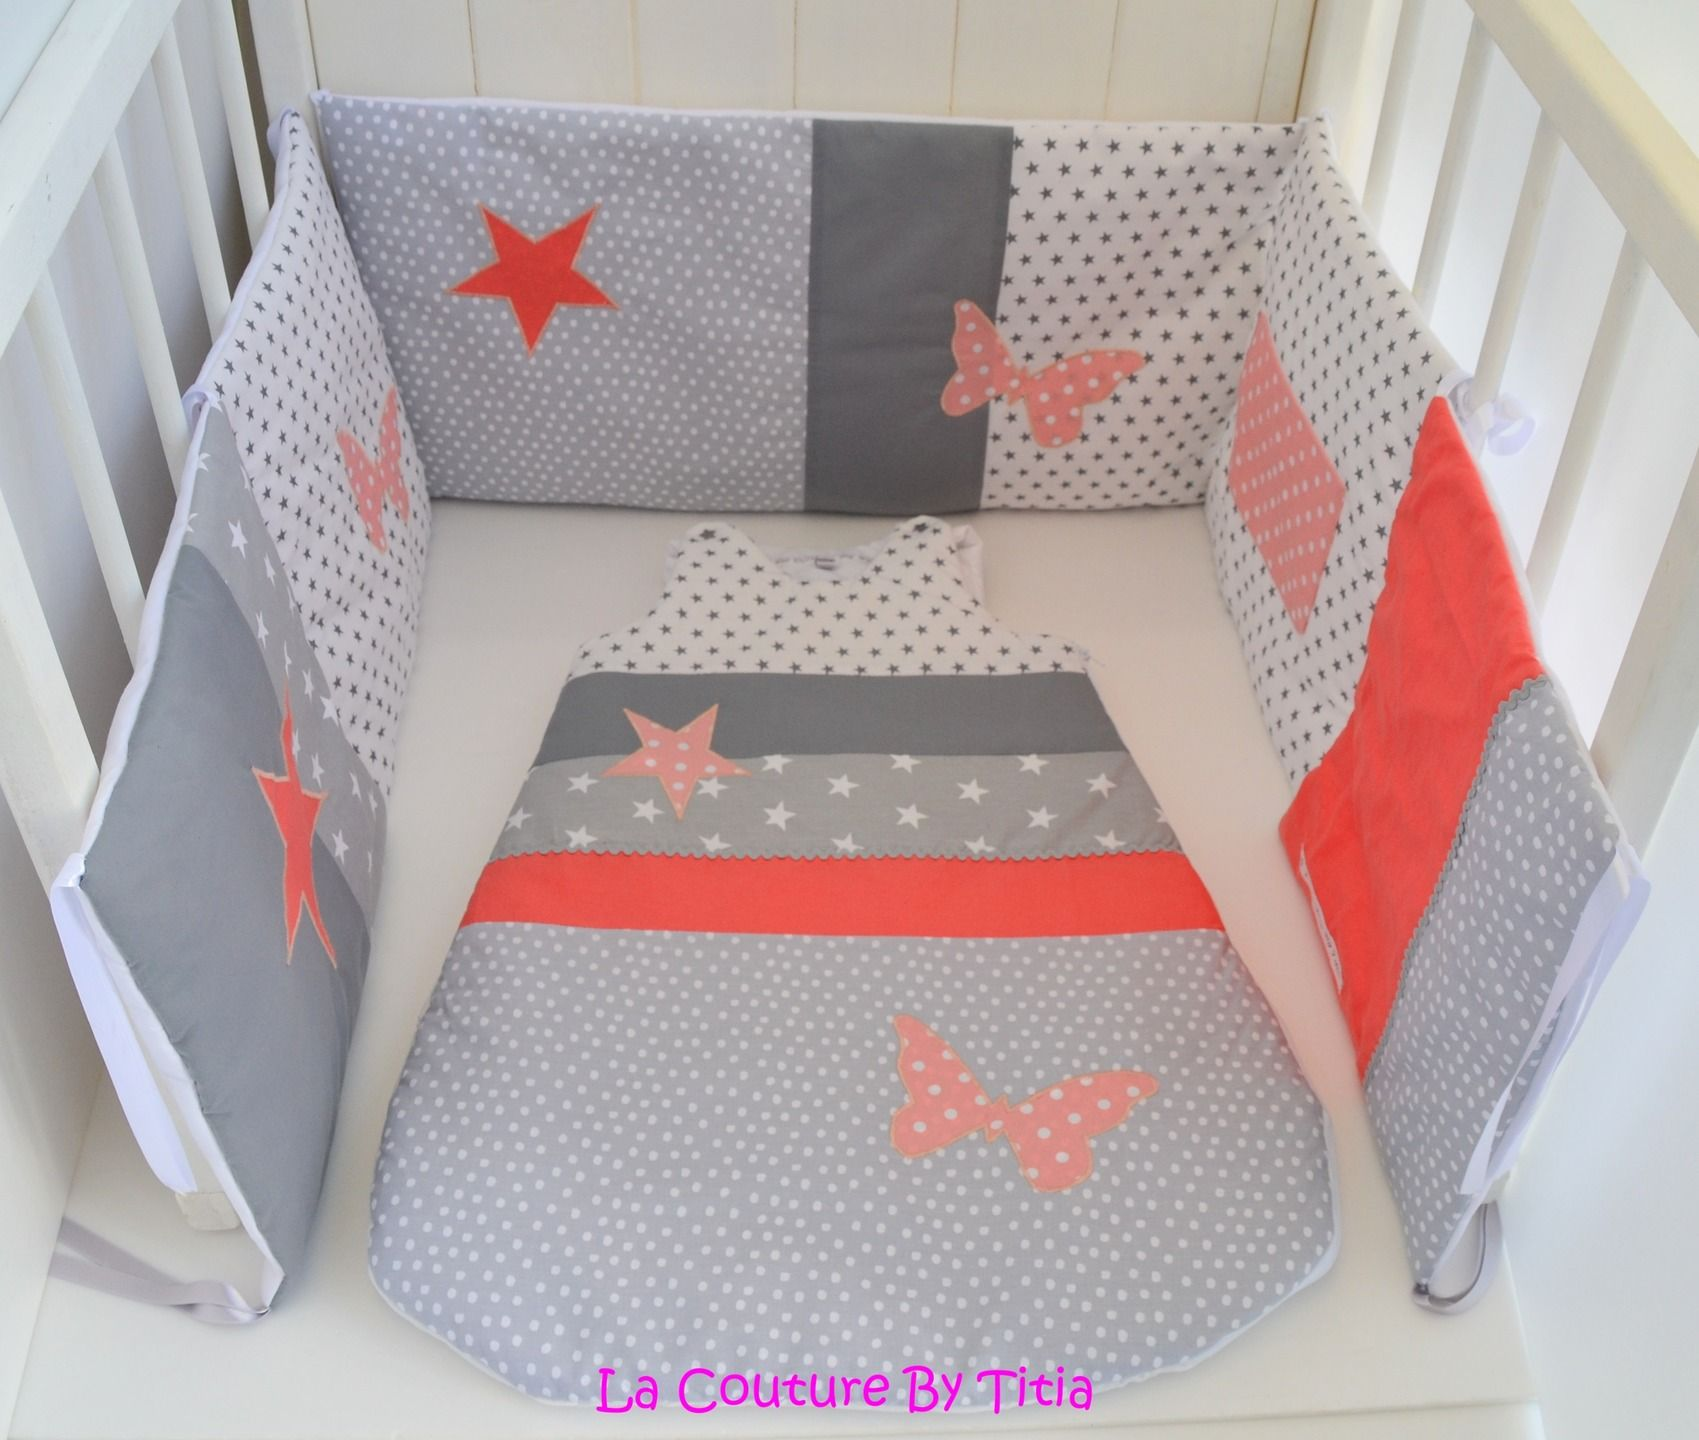 tour de lit et gigoteuse fait main papillon gris et corail lacouturebytitia tour de lit. Black Bedroom Furniture Sets. Home Design Ideas